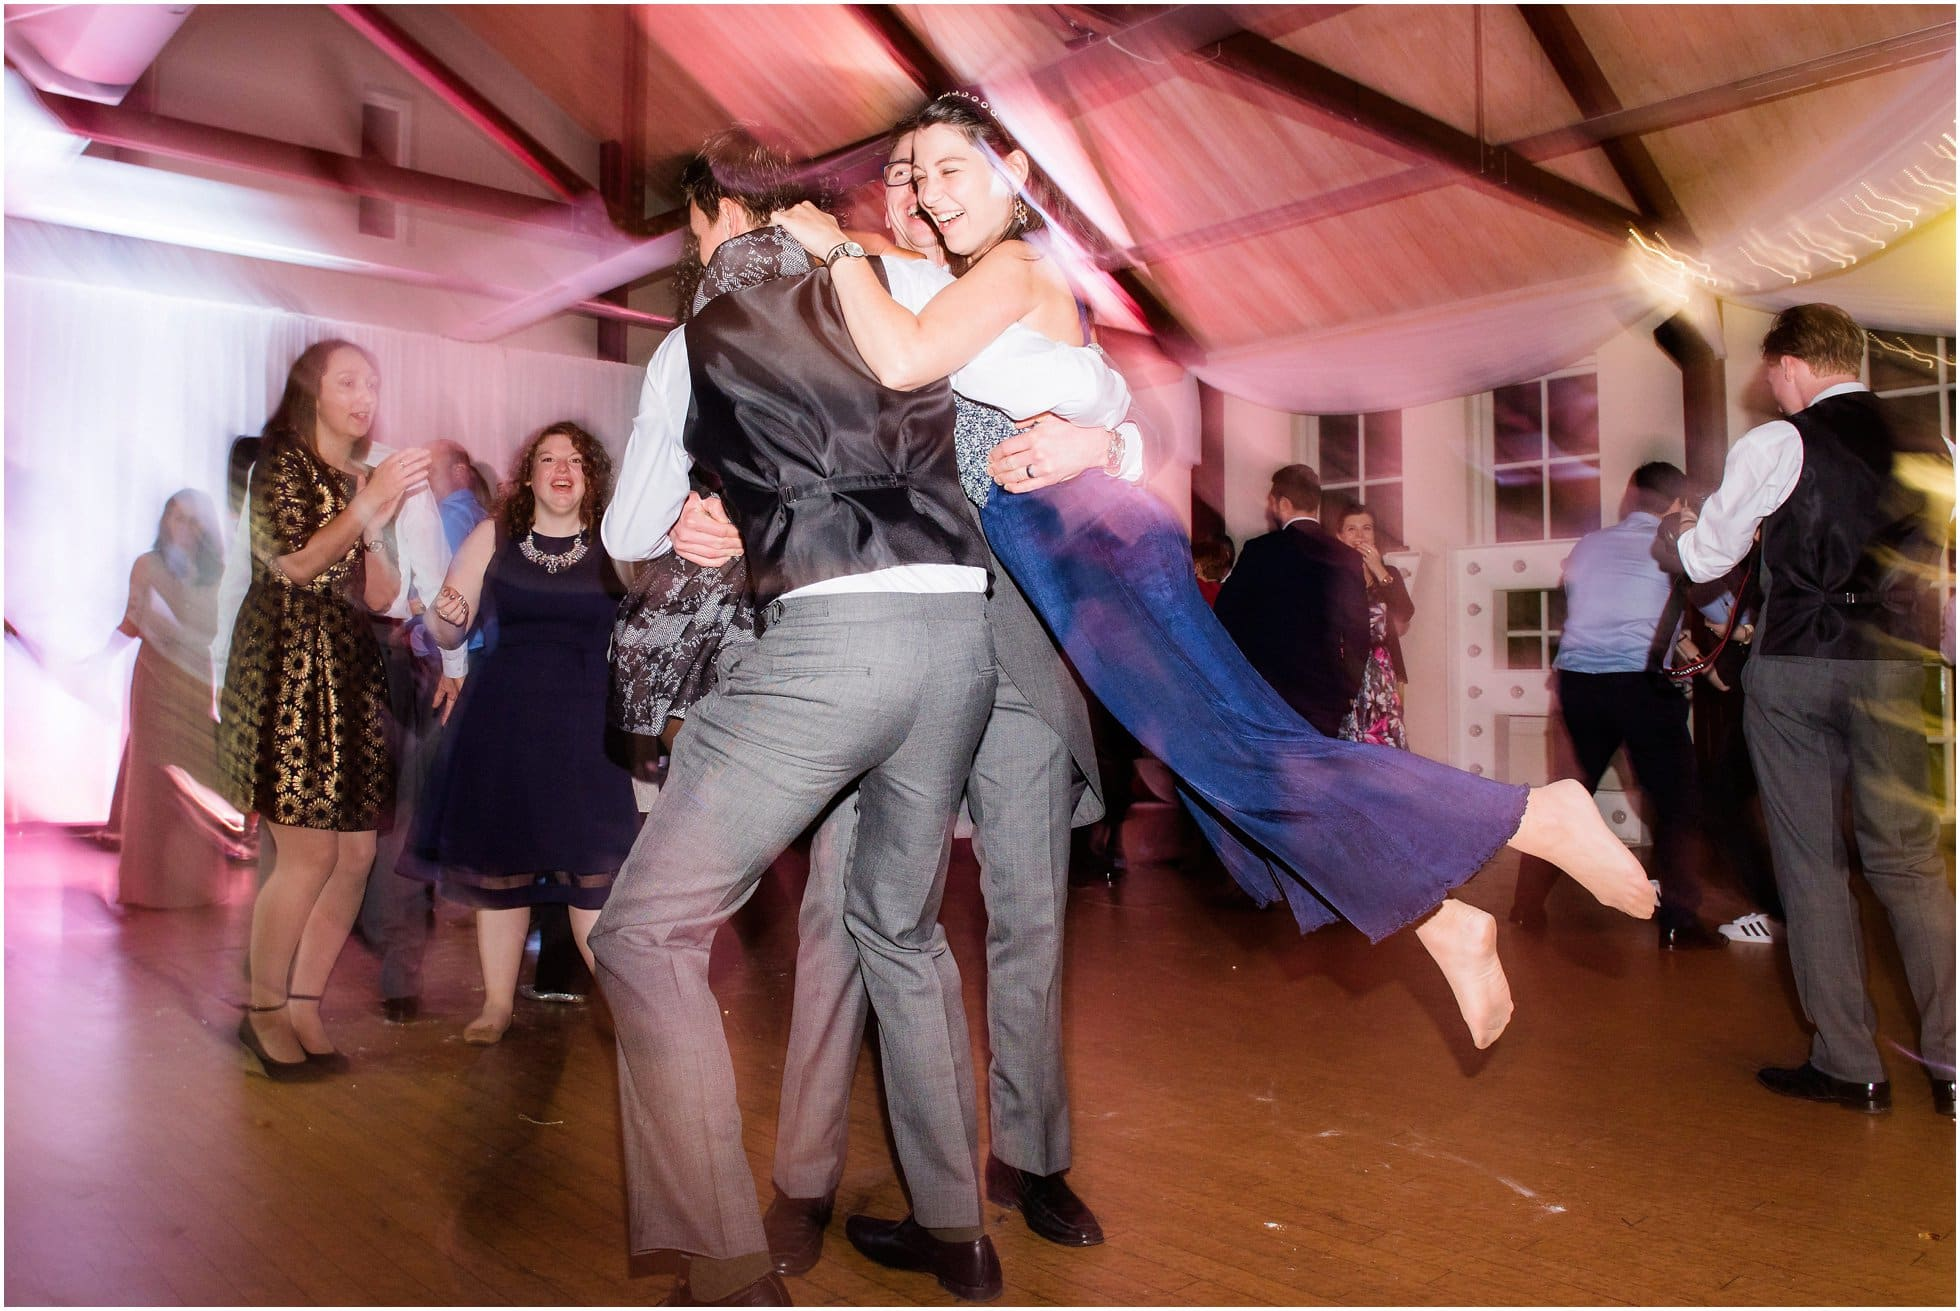 A wedding reception to remember! Spinning the guests!